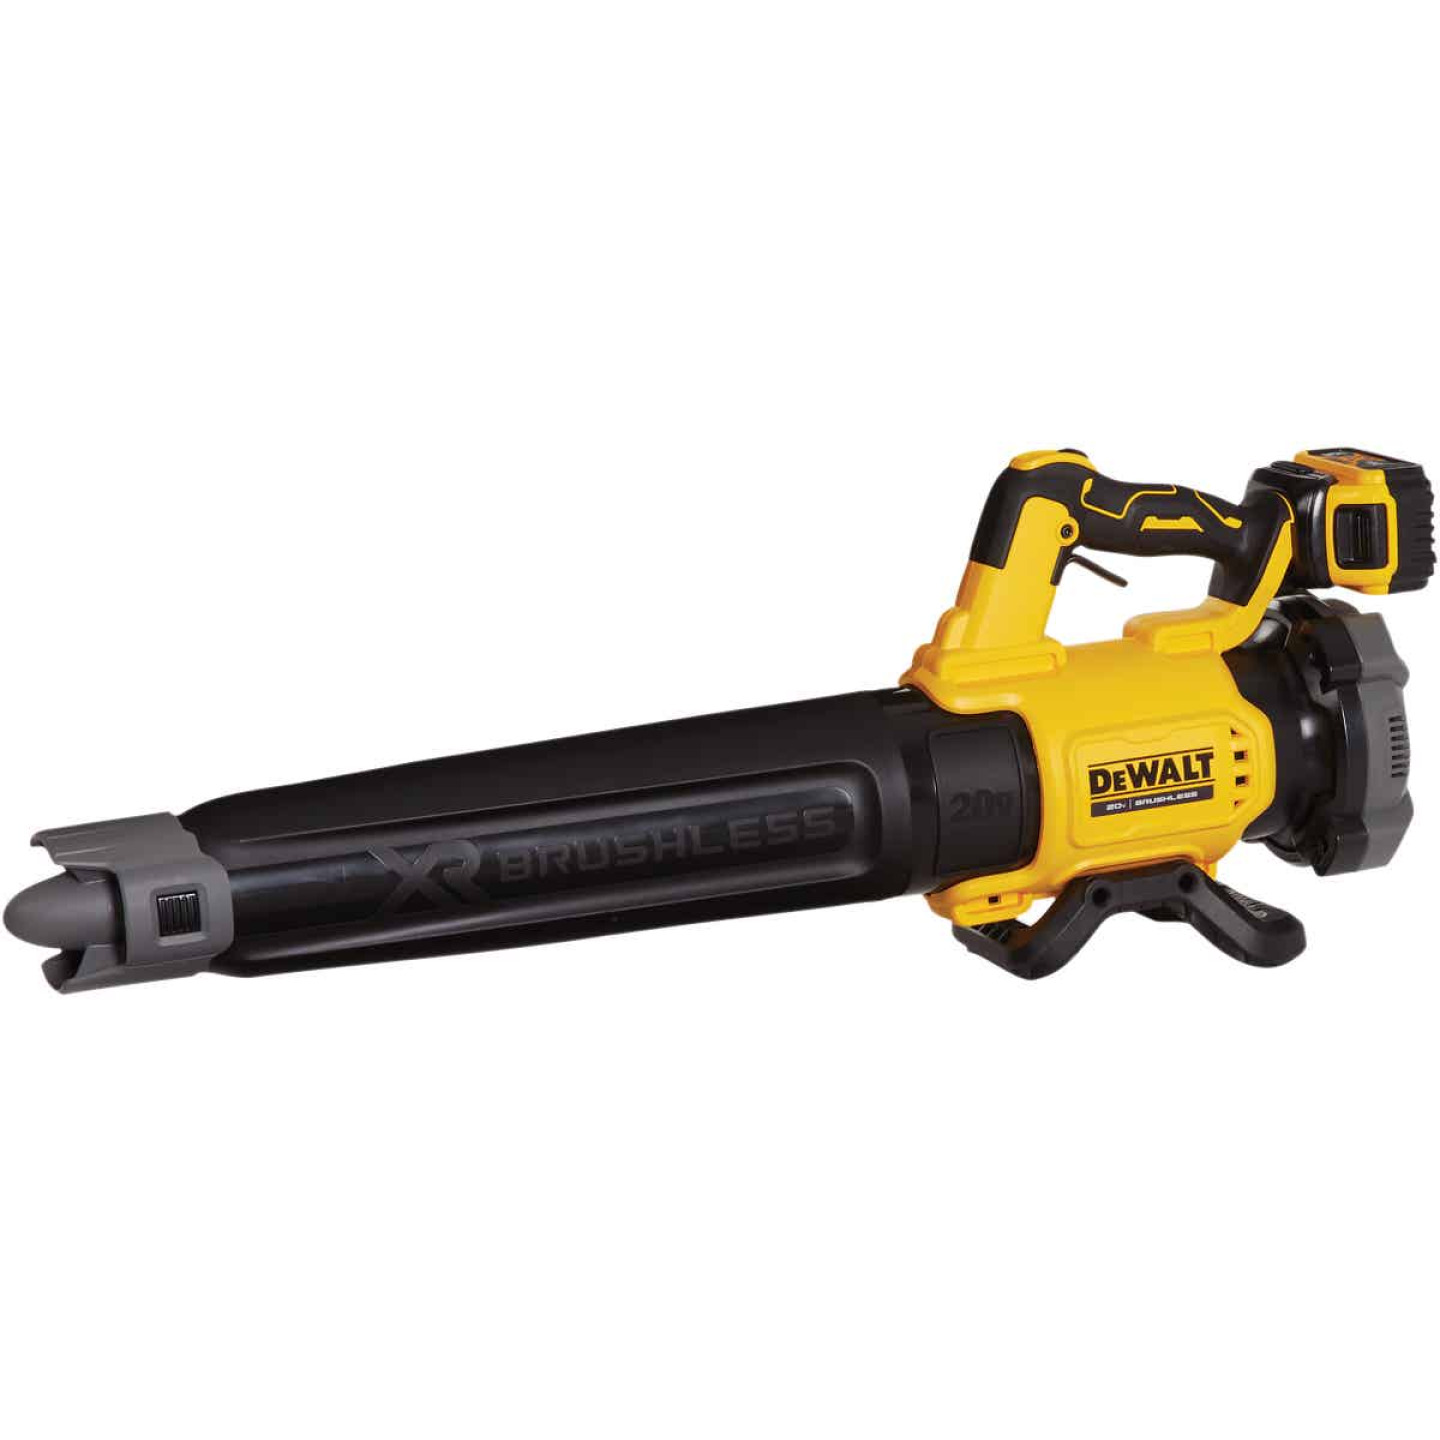 DeWalT MAX XR 90 MPH 20V Brushless Handheld Blower Image 1